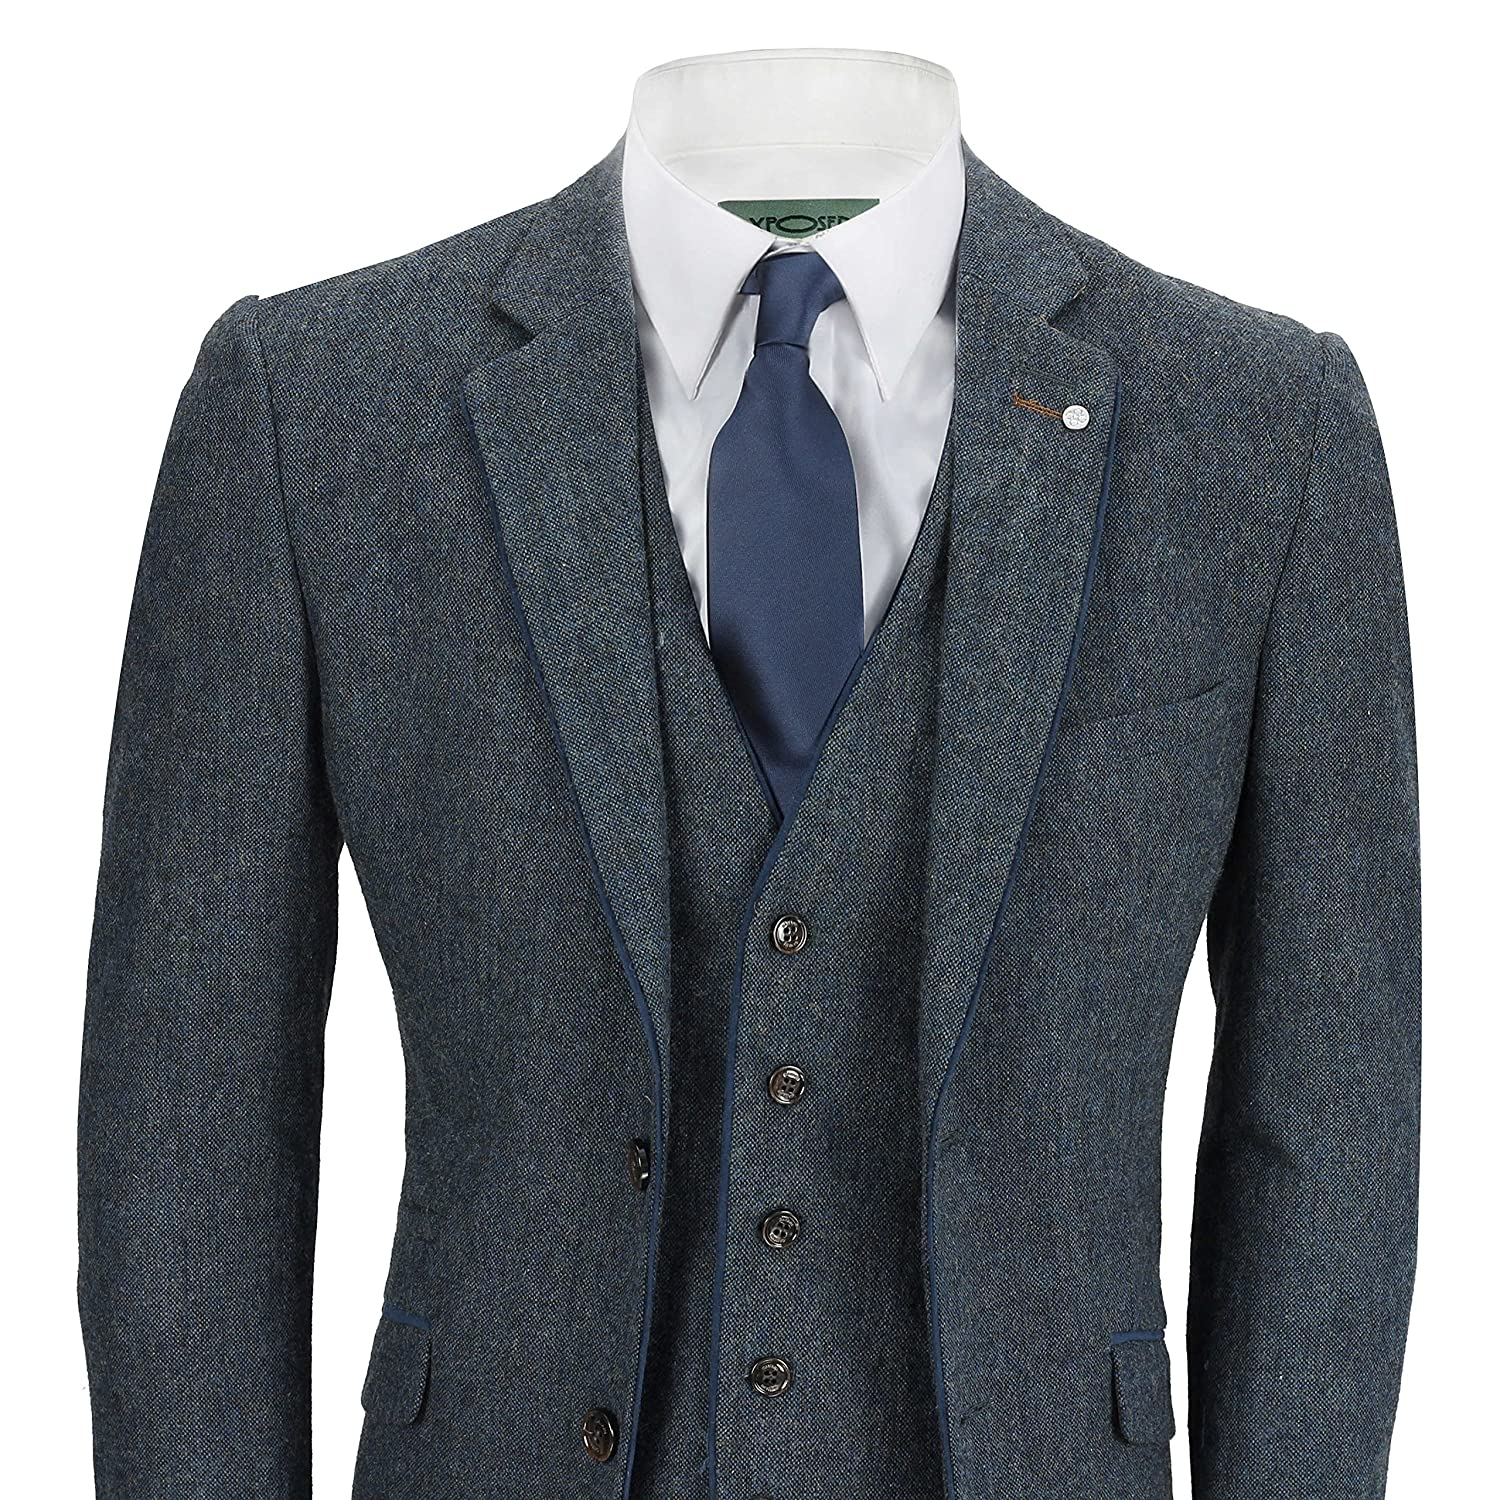 Retro Clothing for Men | Vintage Men's Fashion Cavani Mens Navy Blue 3 Piece Suit Wool Mix Vintage Herringbone Tweed Smart Formal Retro Tailored Fit $144.99 AT vintagedancer.com